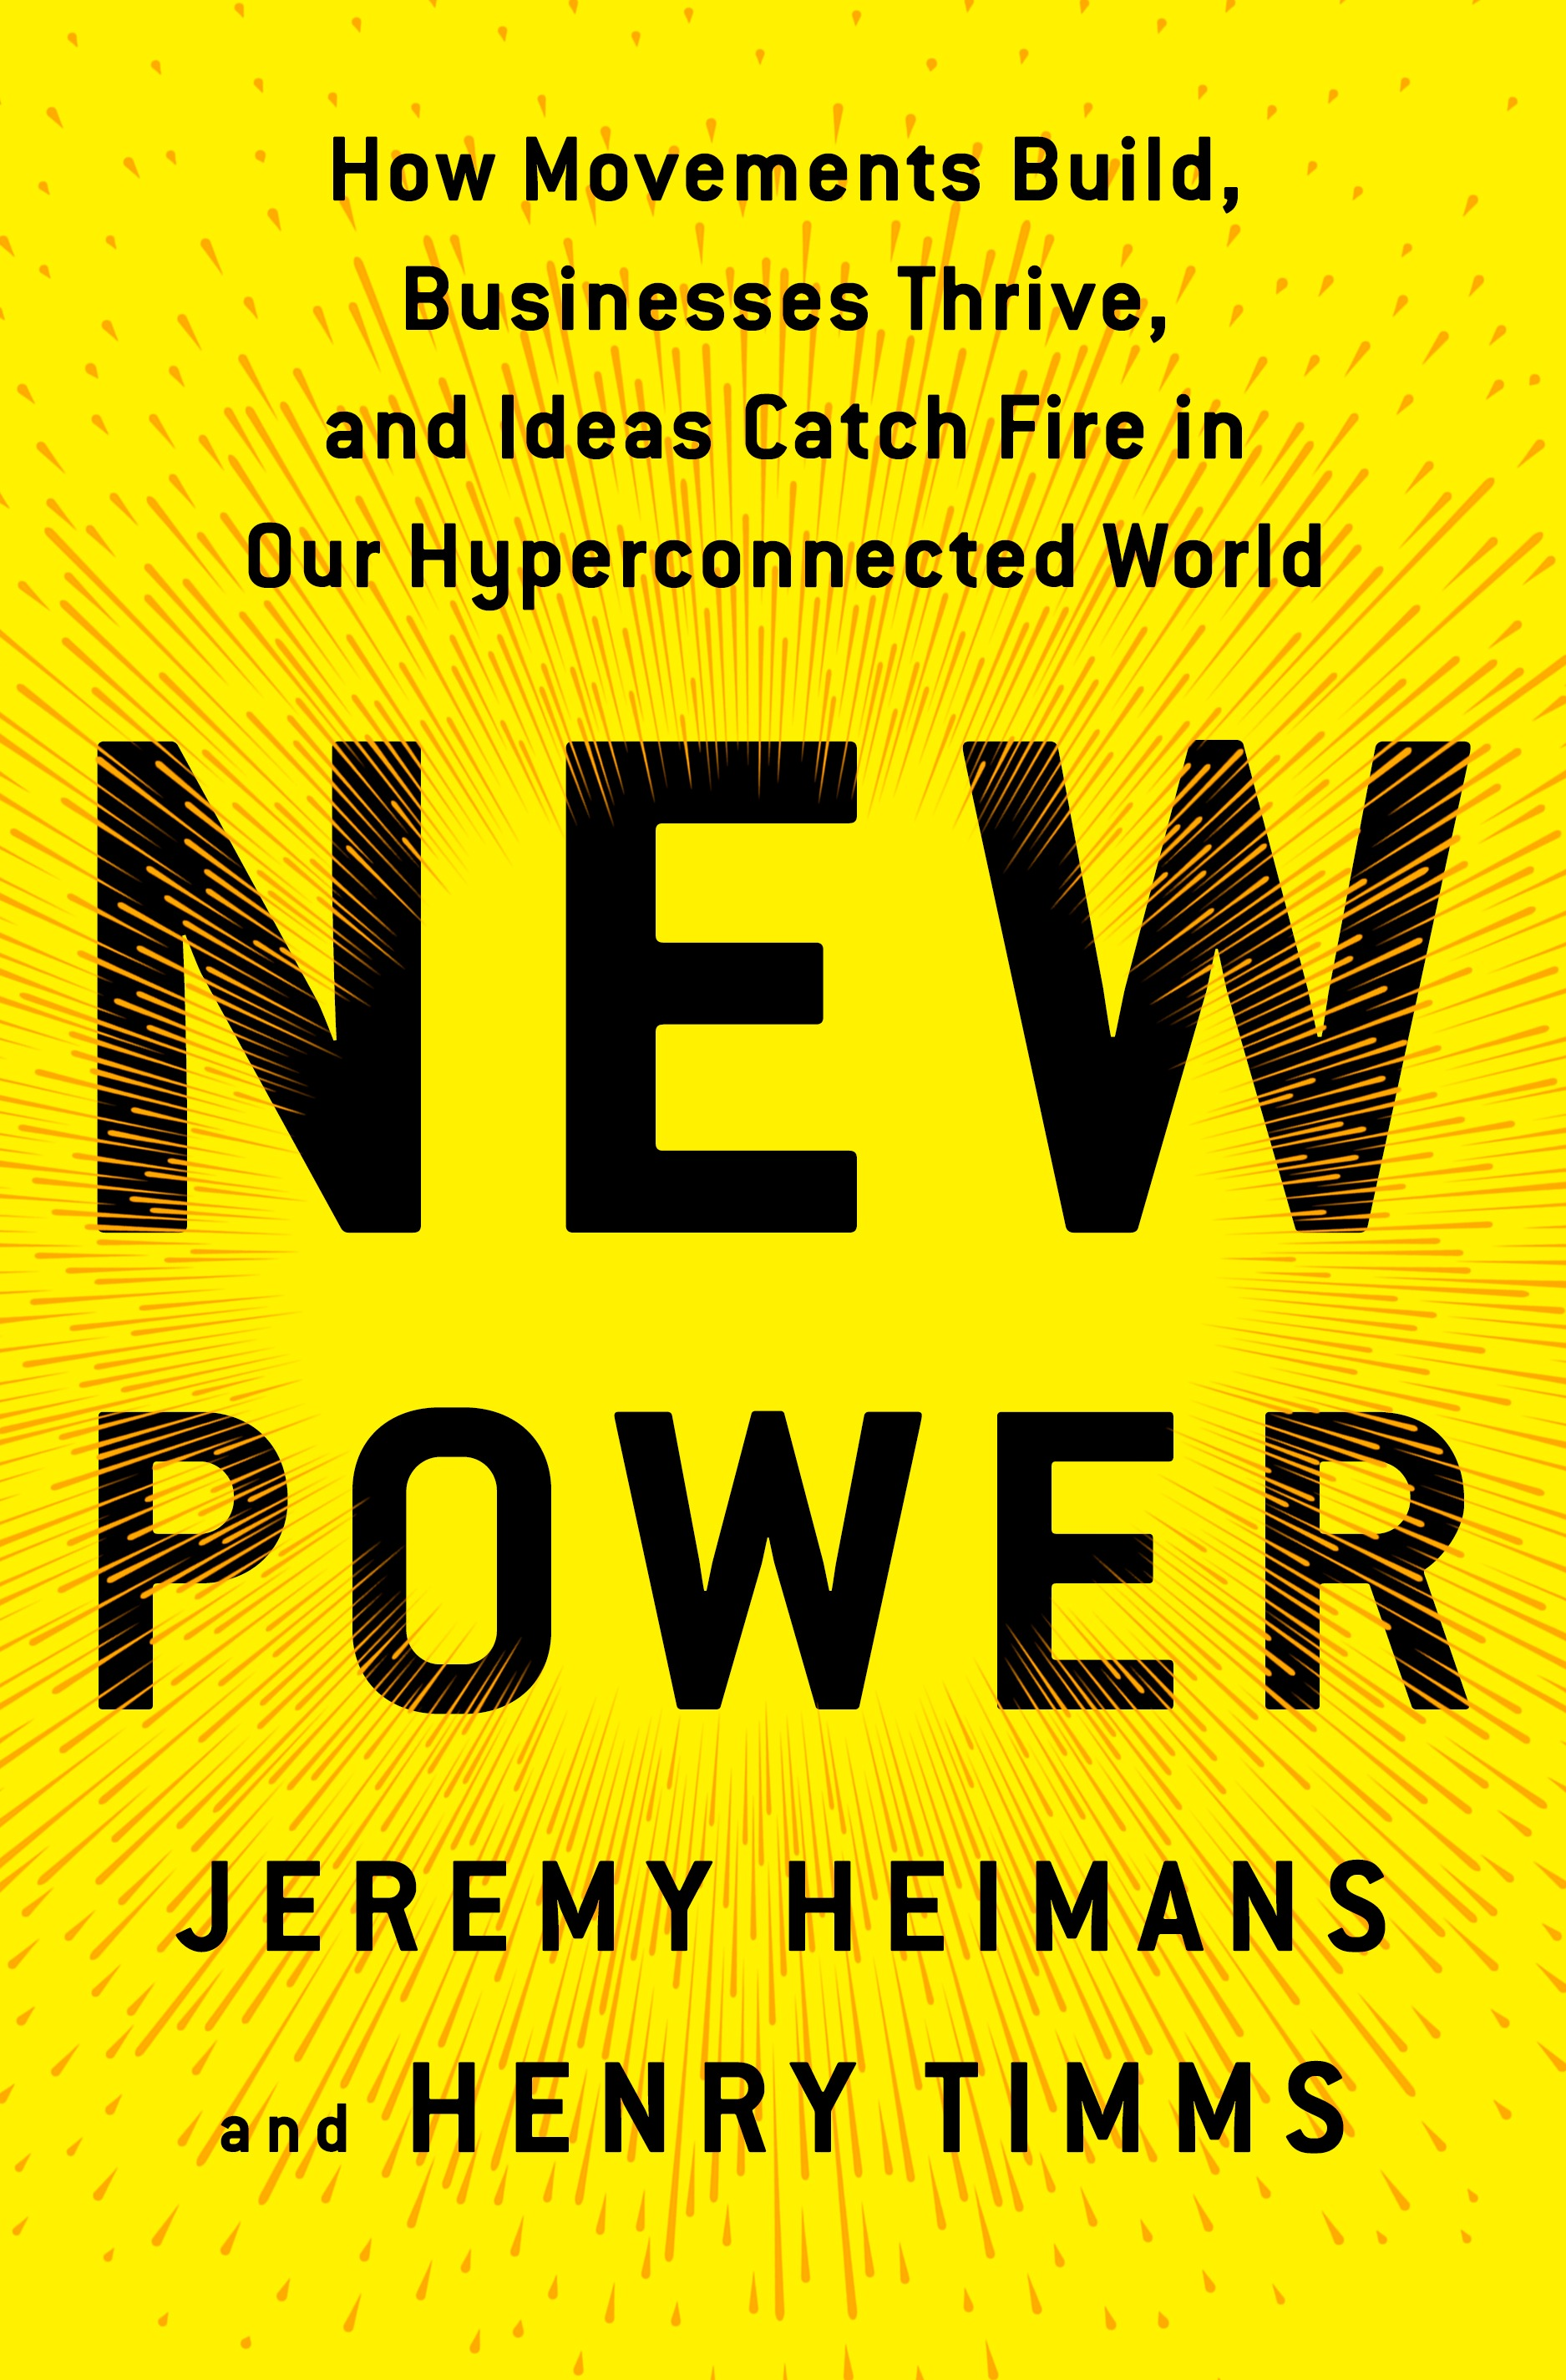 Friends of SMU Libraries present Jeremy Heimans and Henry Timms and NEW POWER: How Movements Build, Businesses Thrive, and Ideas Catch Fire